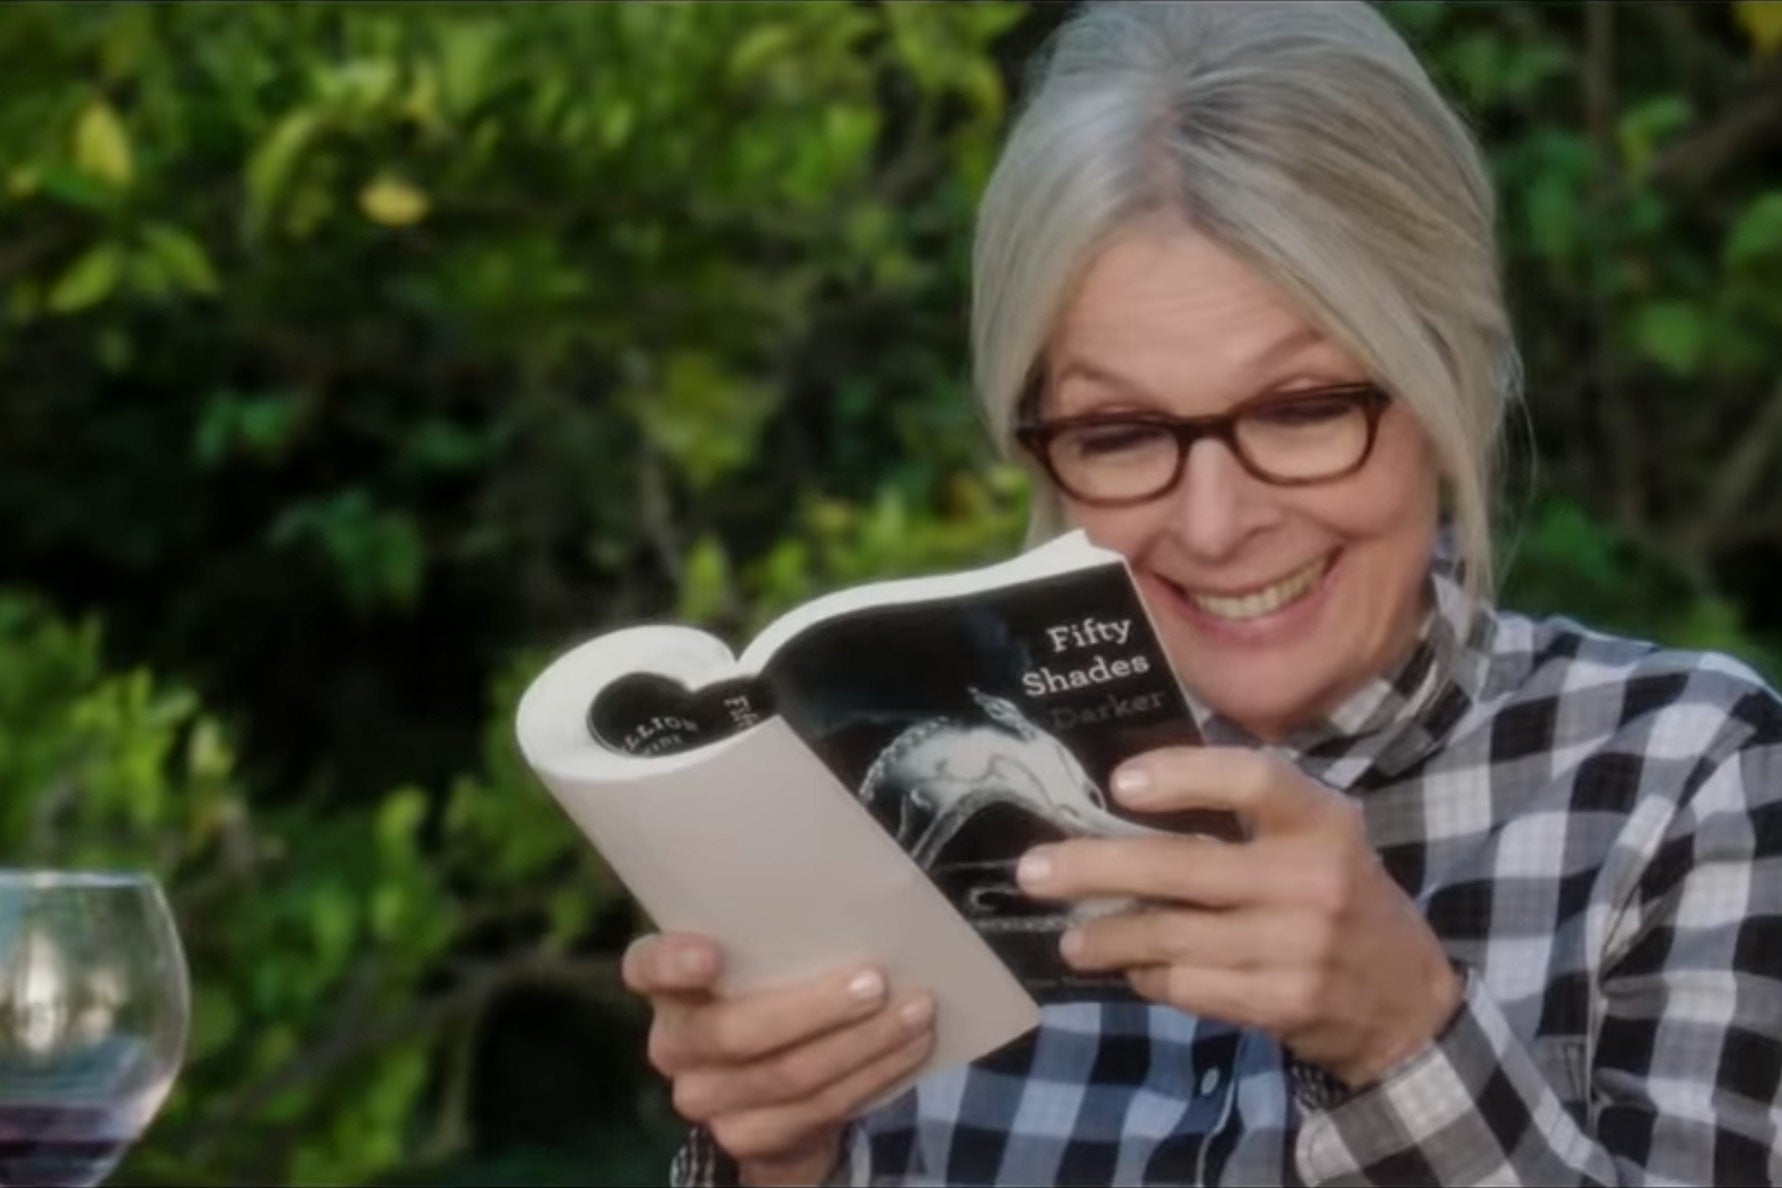 Diane Keaton grins while reading Fifty Shades of Grey in the movie Book Club.